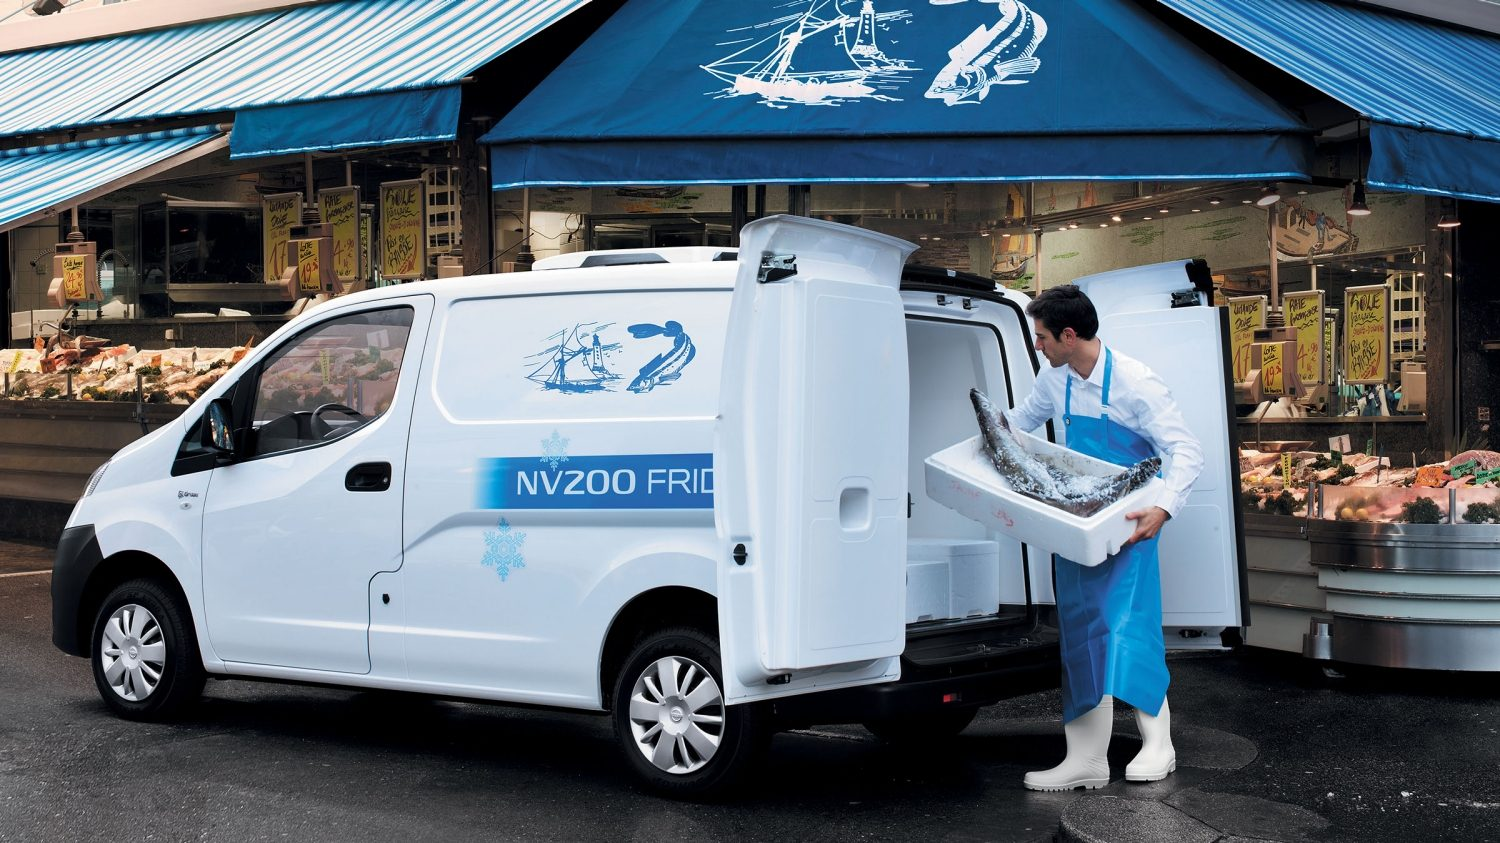 Nissan NV200 - Refrigerated conversion